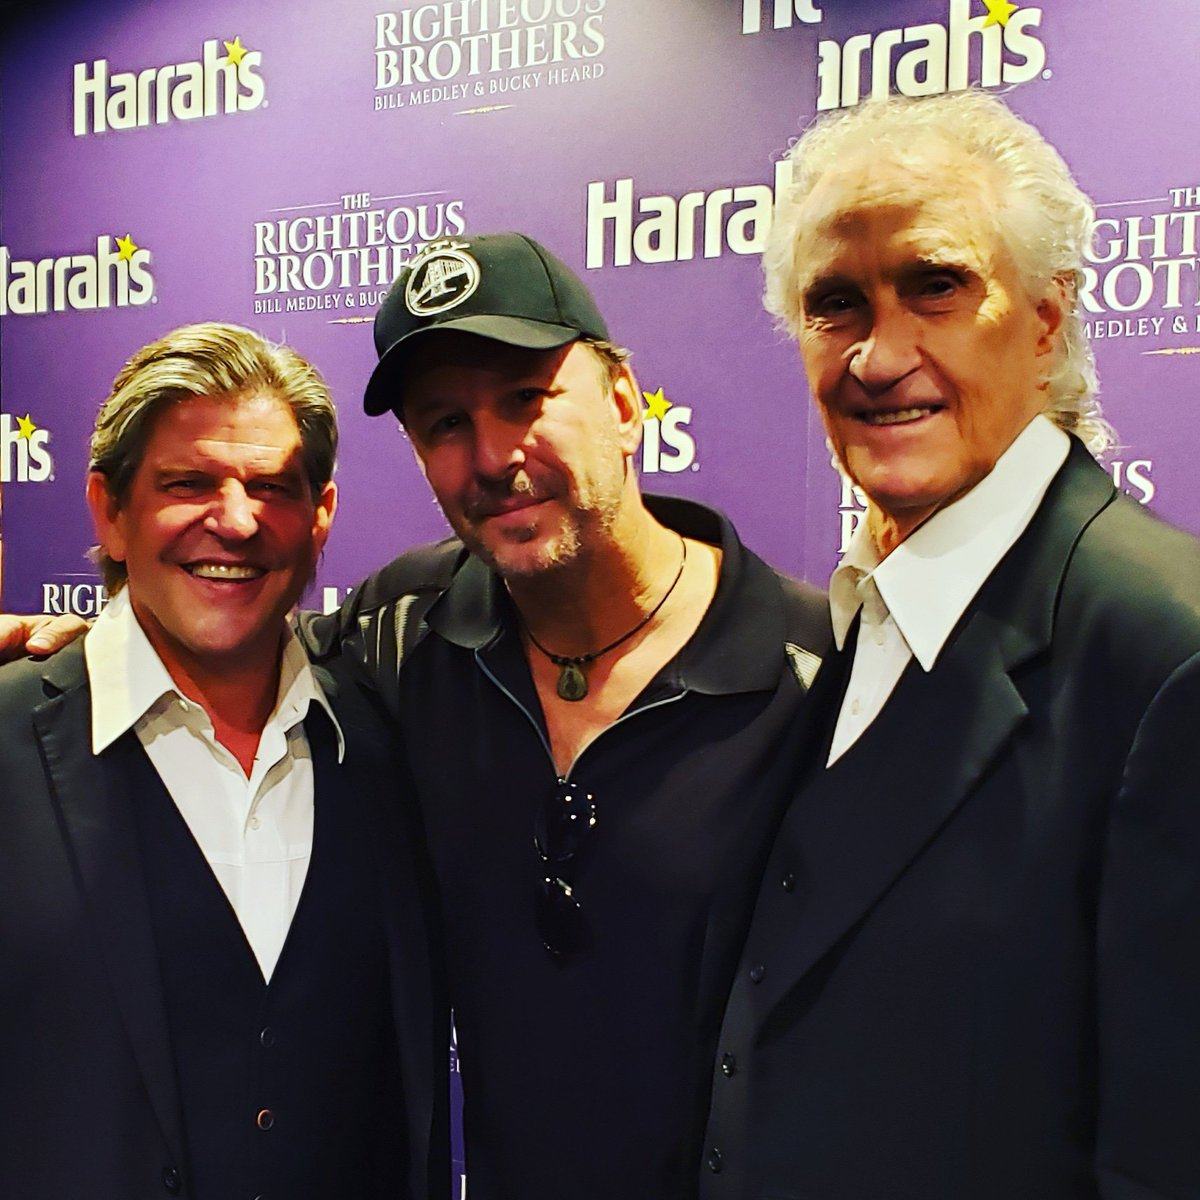 With The Righteous Brothers